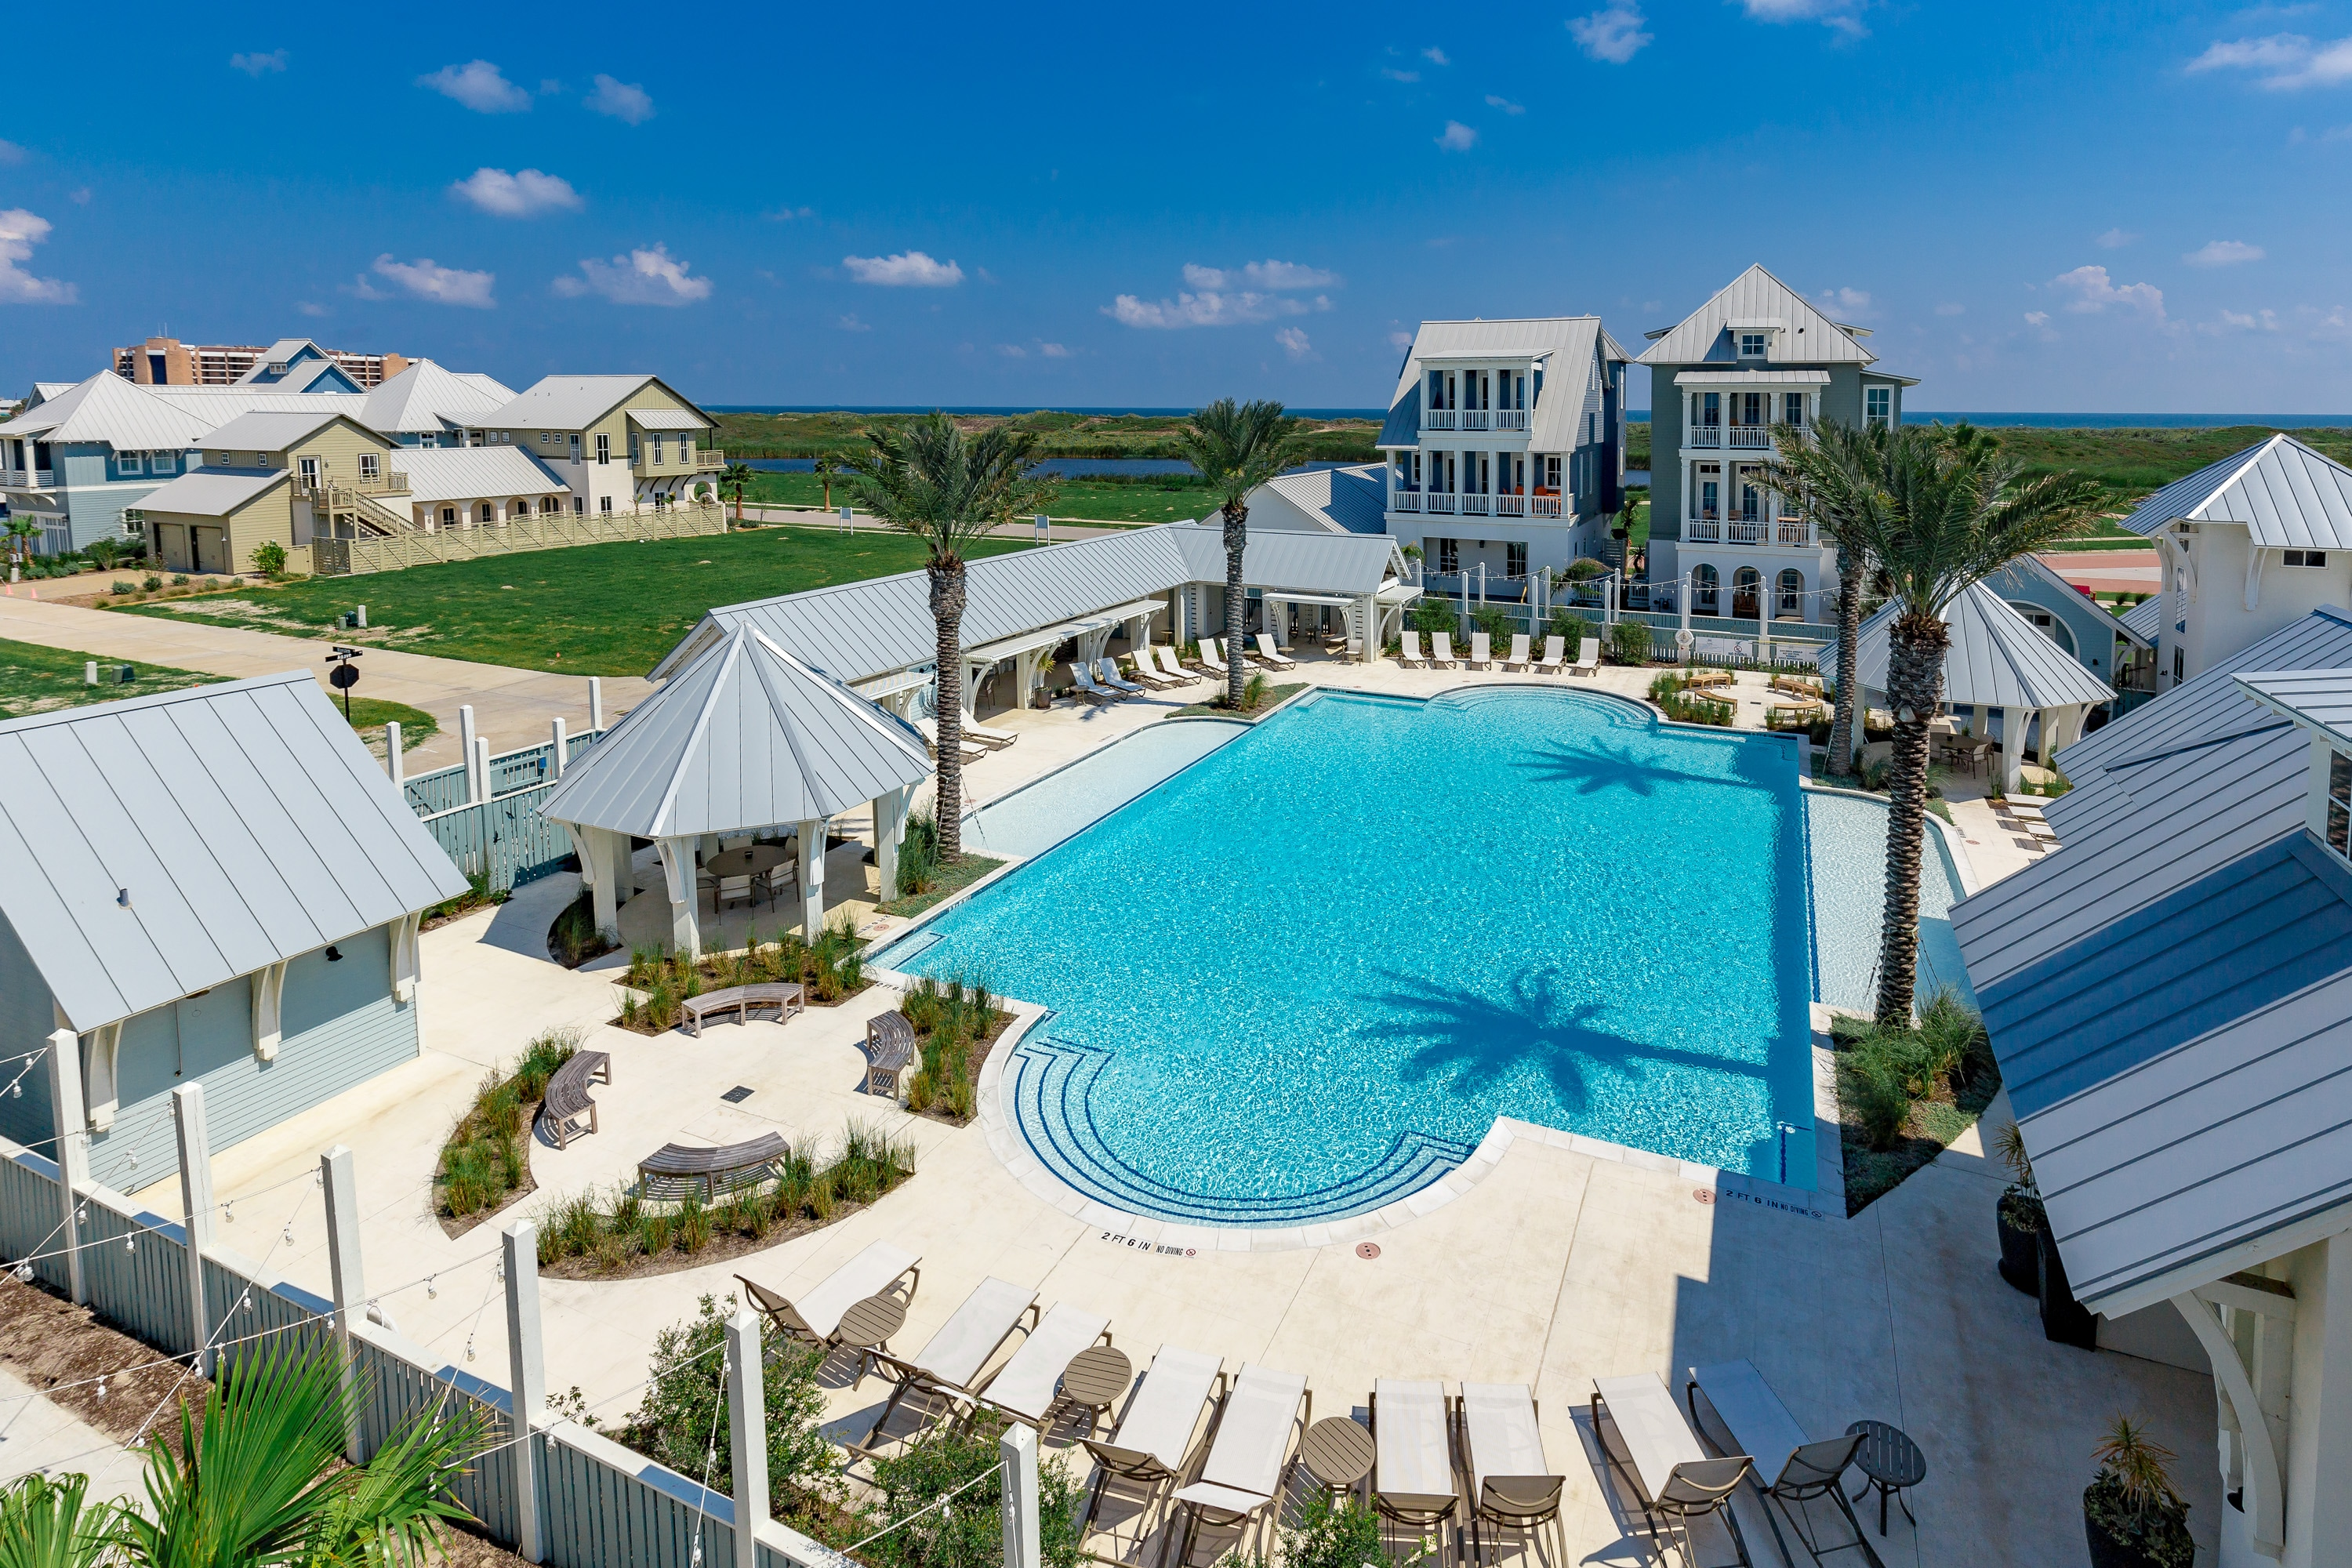 This luxury home is professionally managed by TurnKey Vacation Rentals.